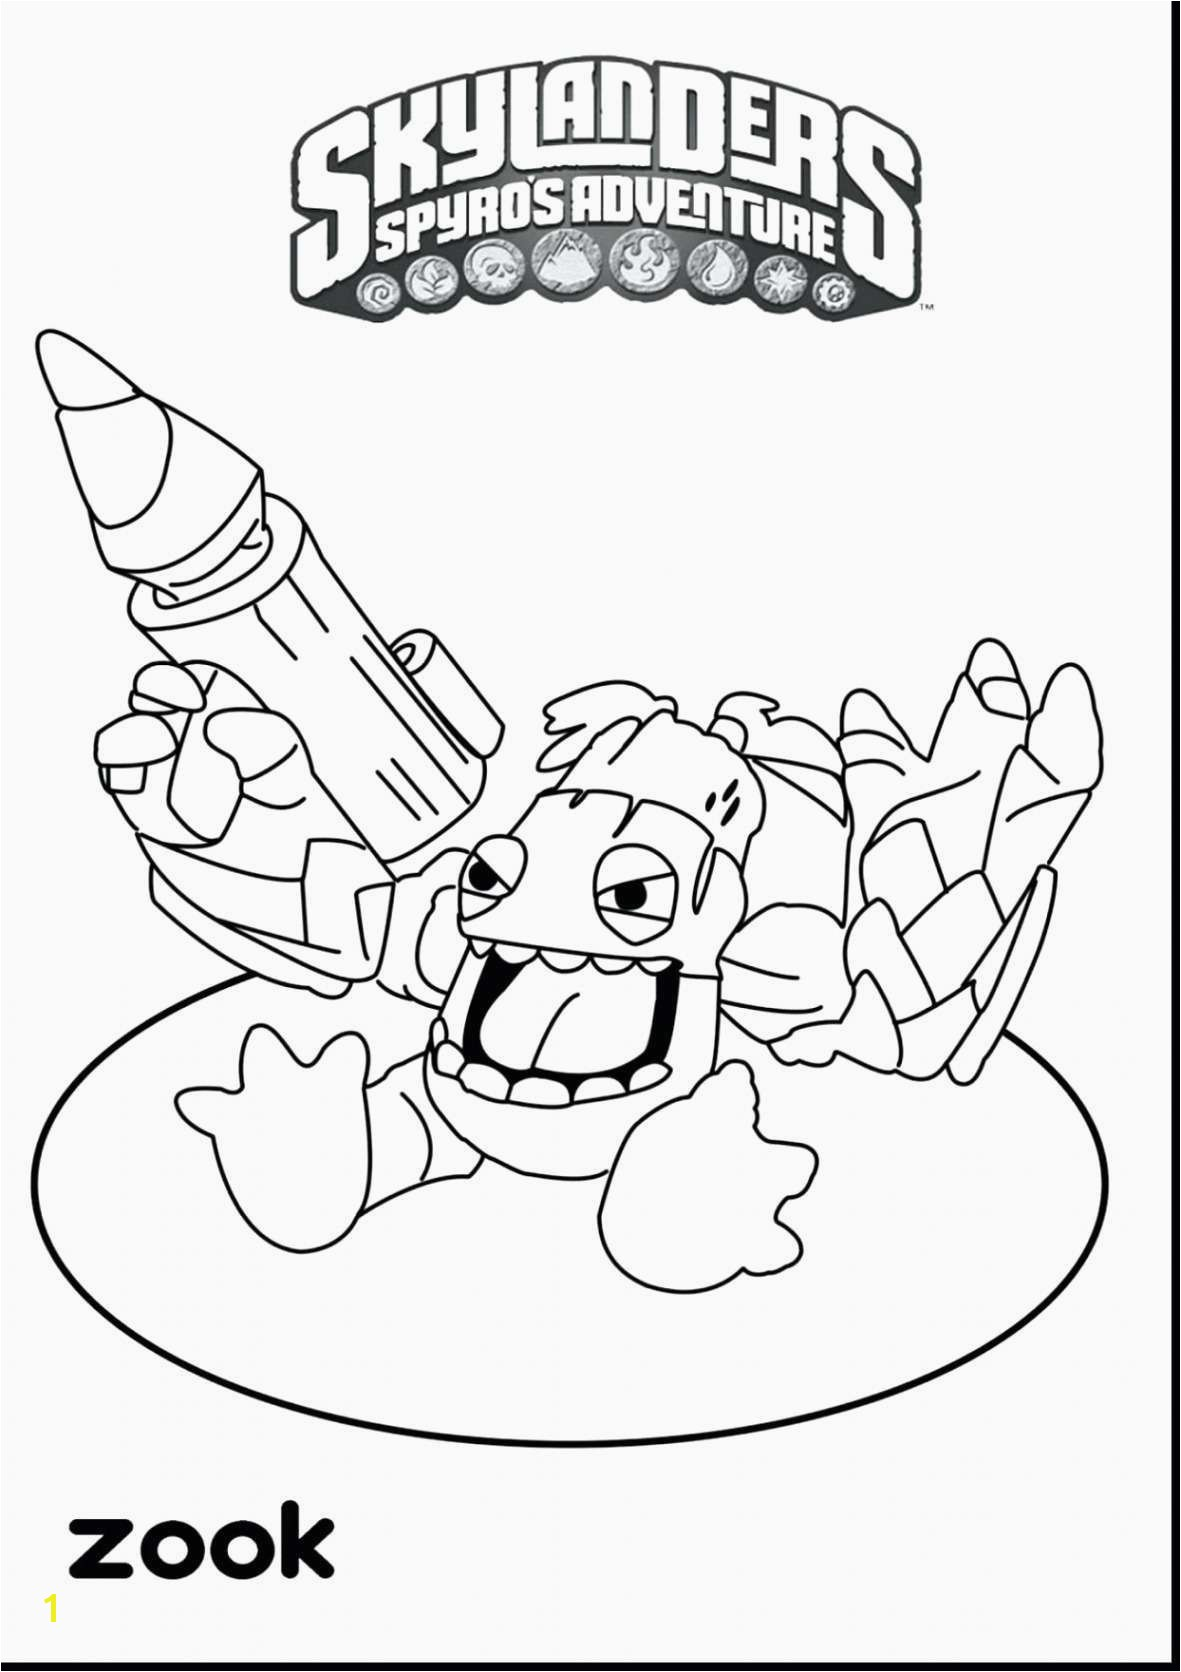 Cool Printable Coloring Pages Fresh Cool Od Dog Coloring Pages Free awesome printable princess